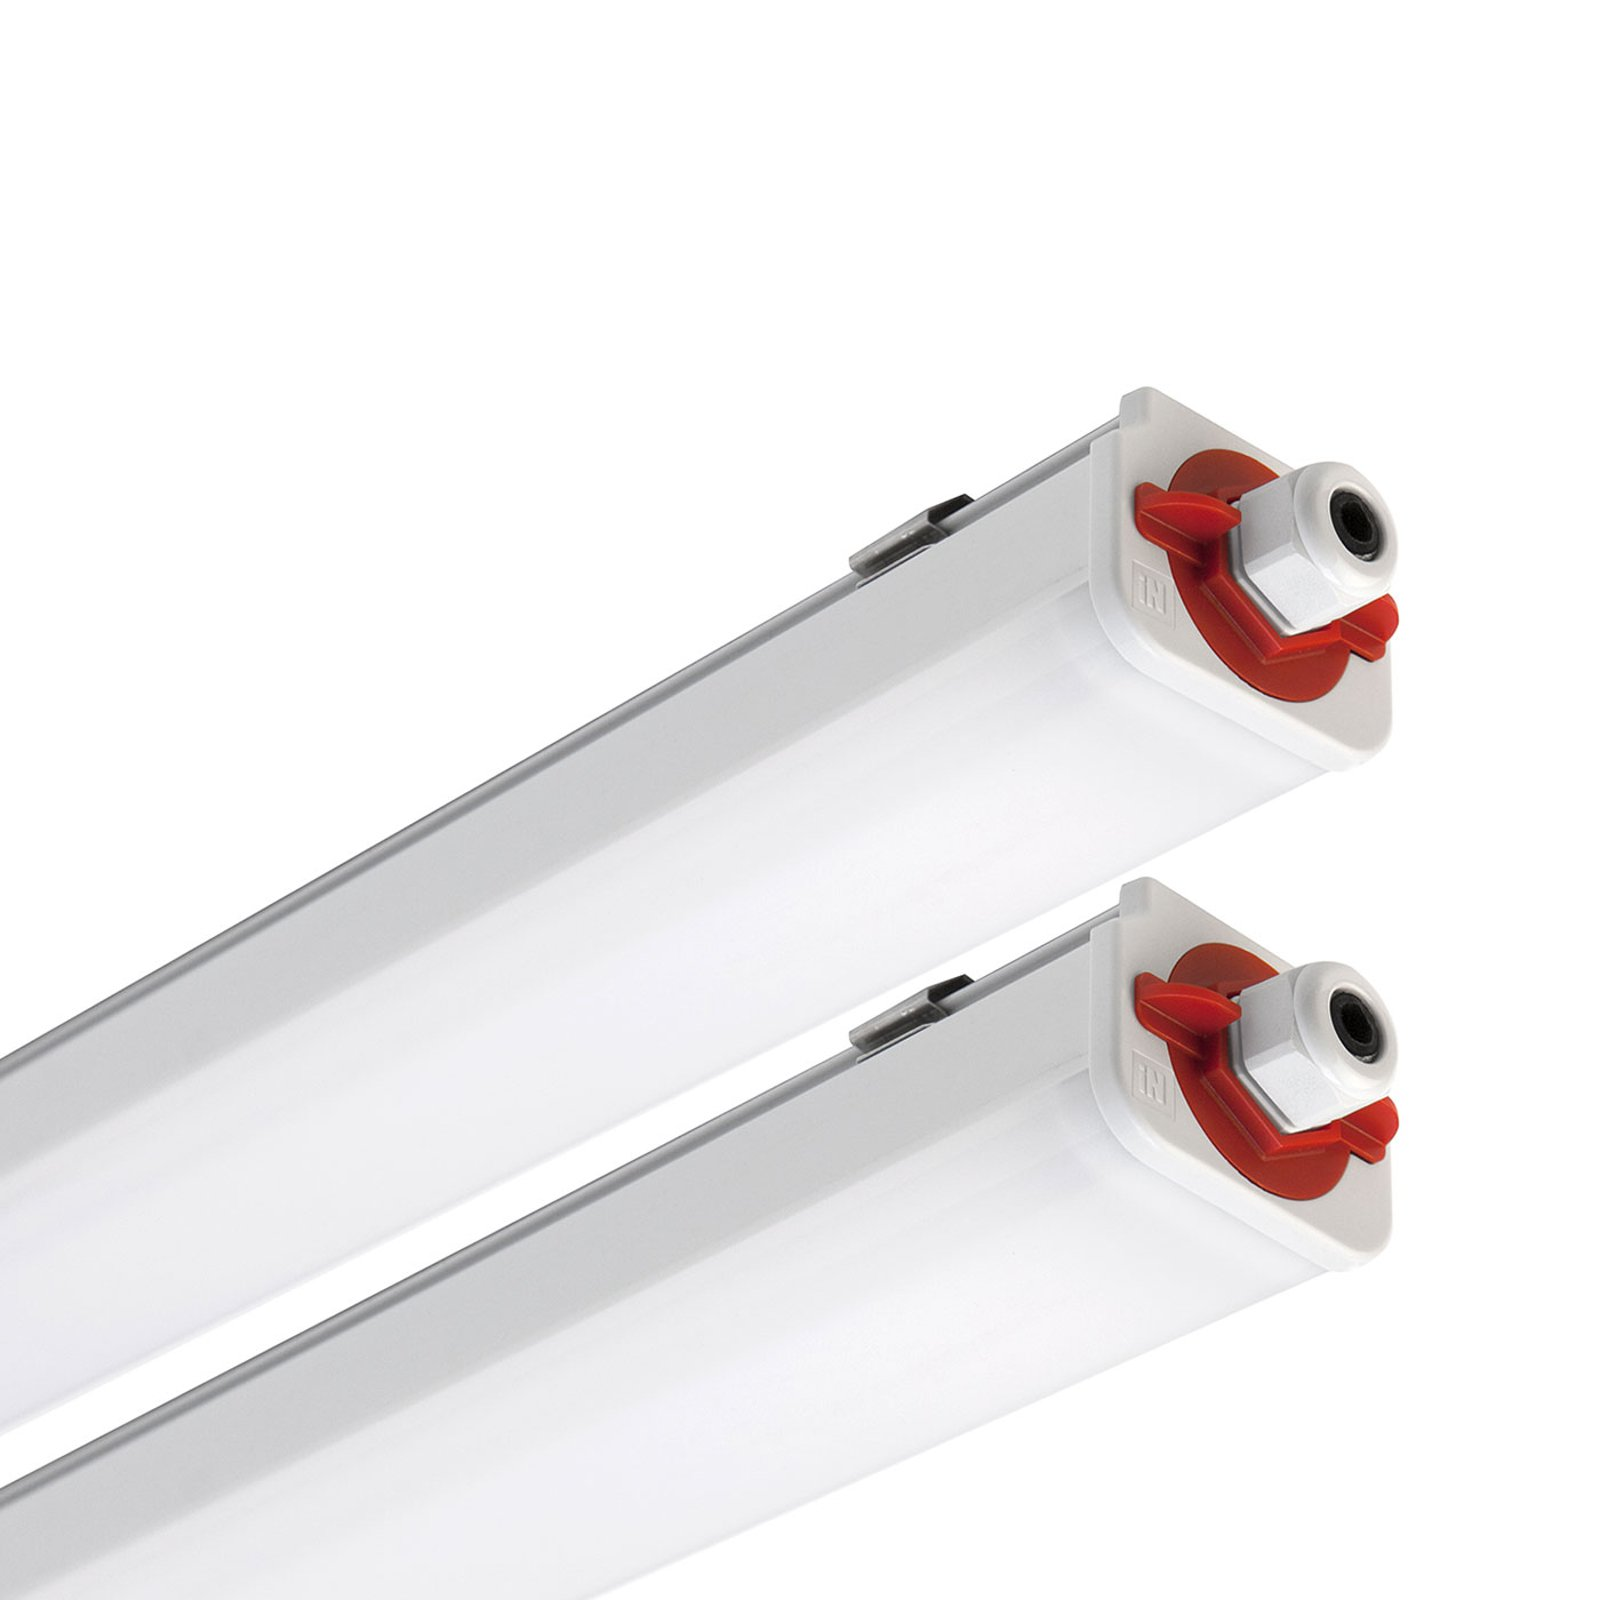 LED-taklampe Norma+150 CL, 60 W 9060 lm 150 cm